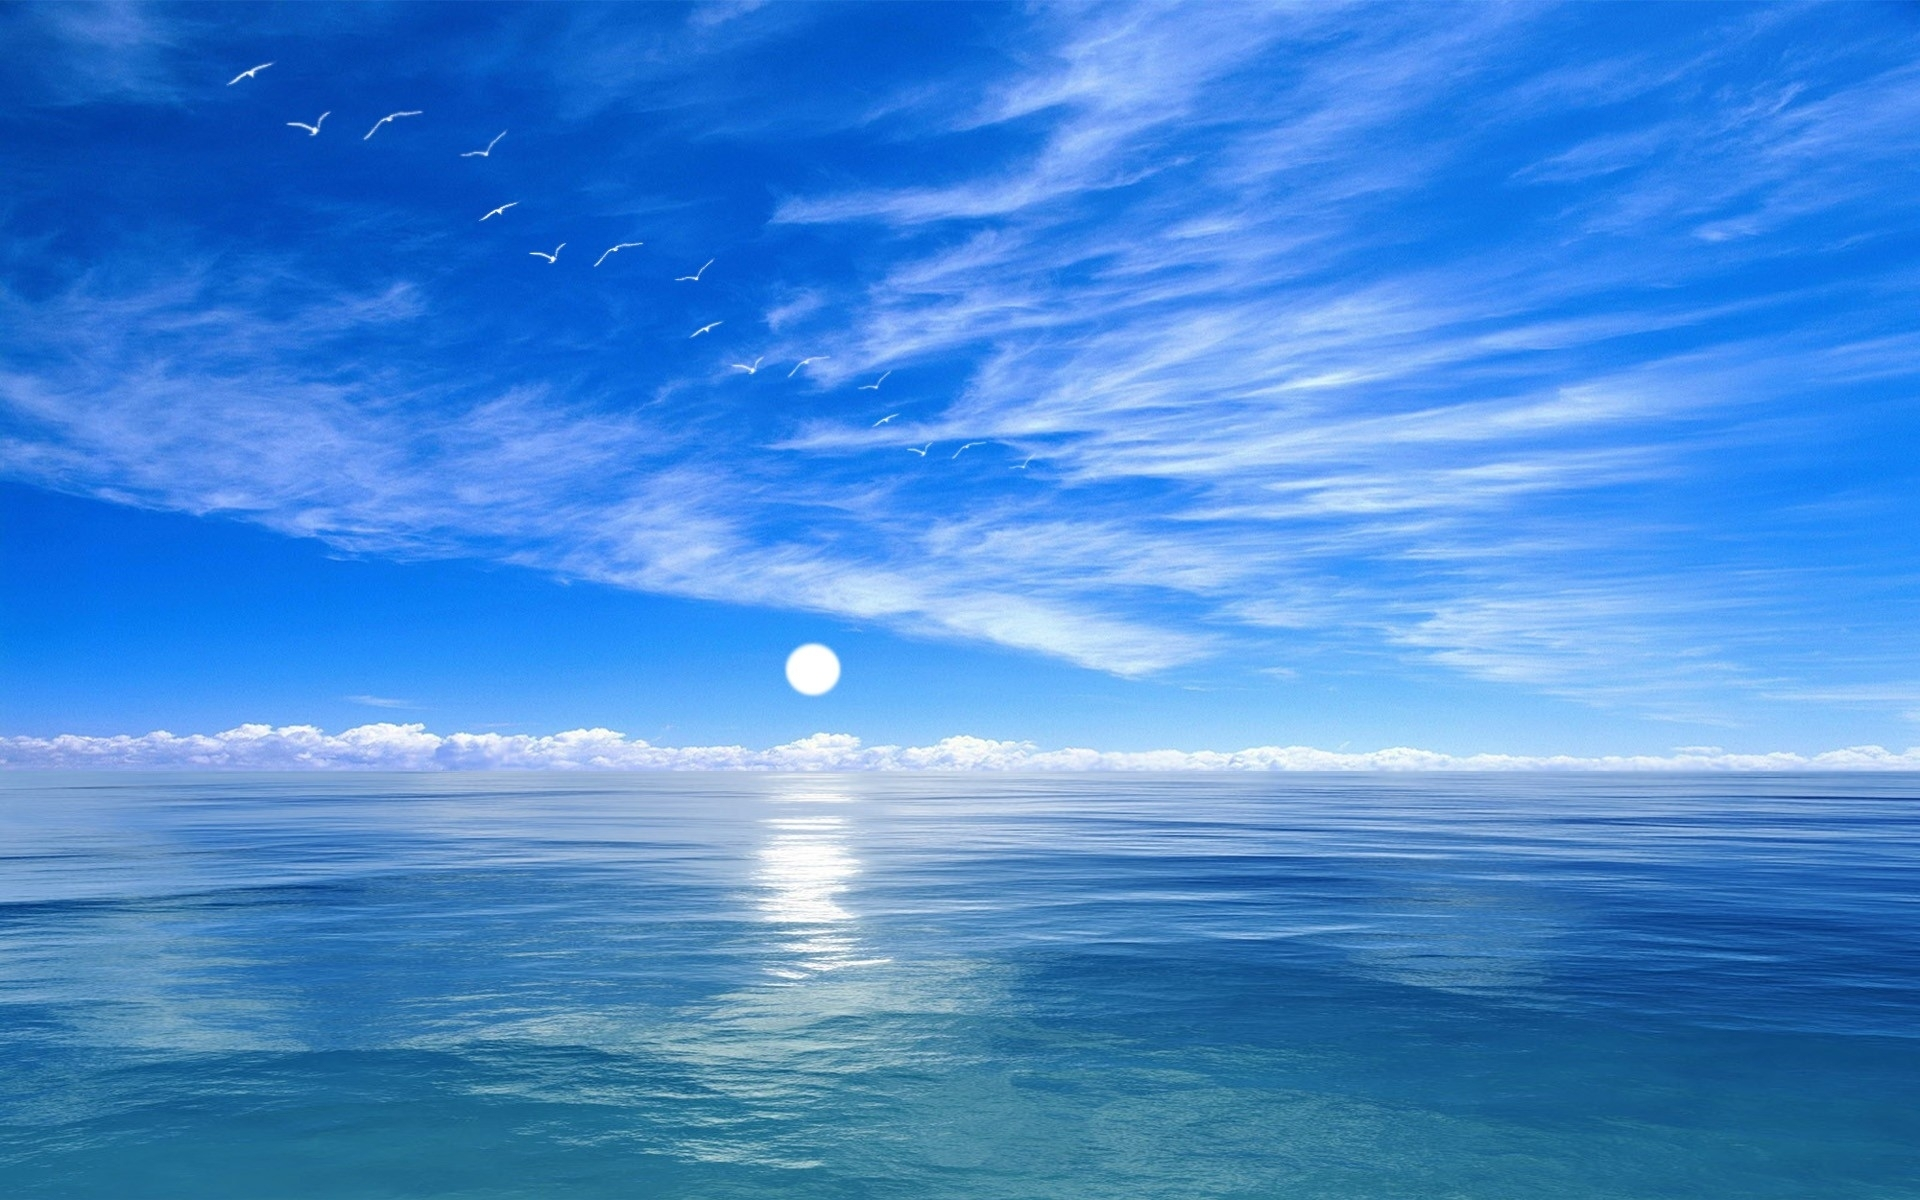 blue sky and ocean background hq